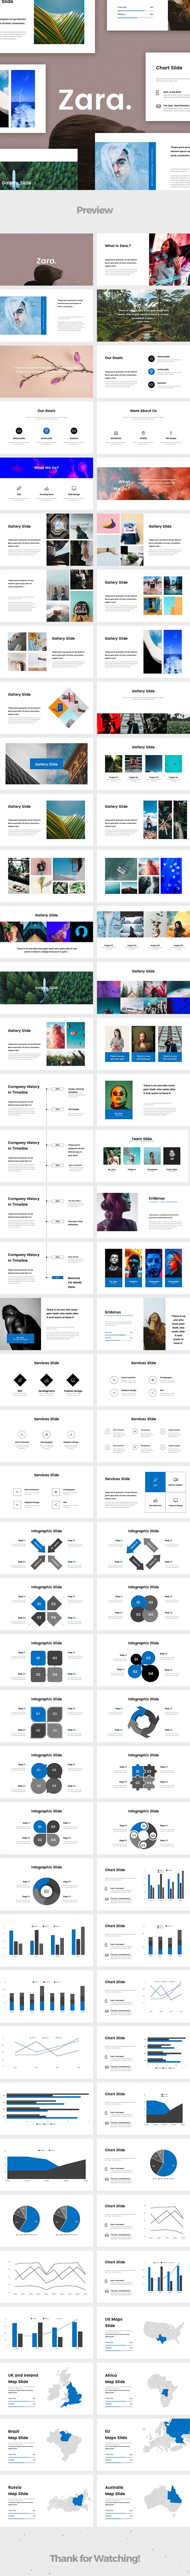 Zara. Google Slides Template - Google Slides Presentation Templates